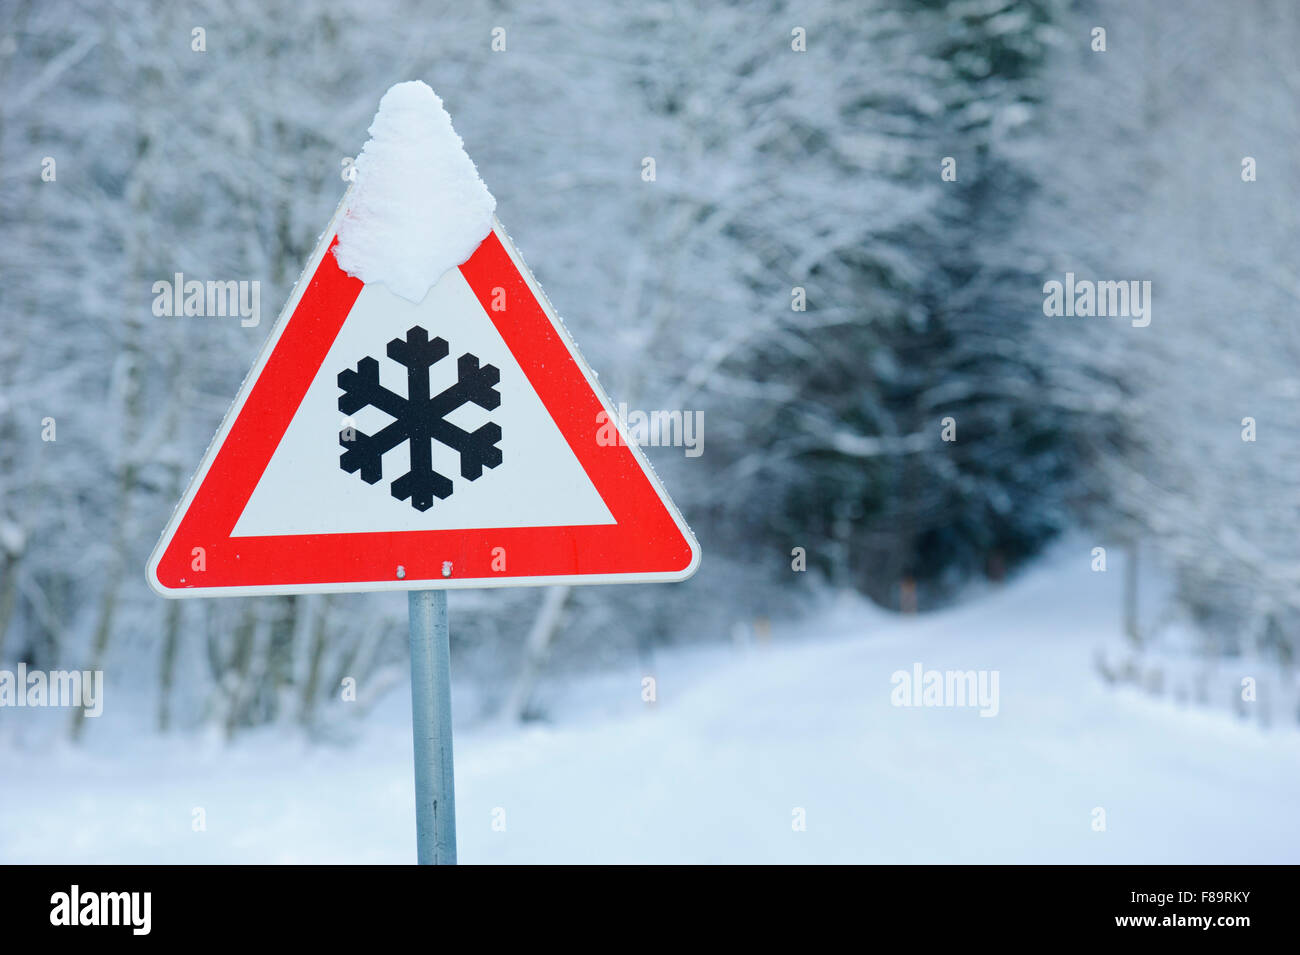 traffic sign warns of snow and ice at road - Stock Image